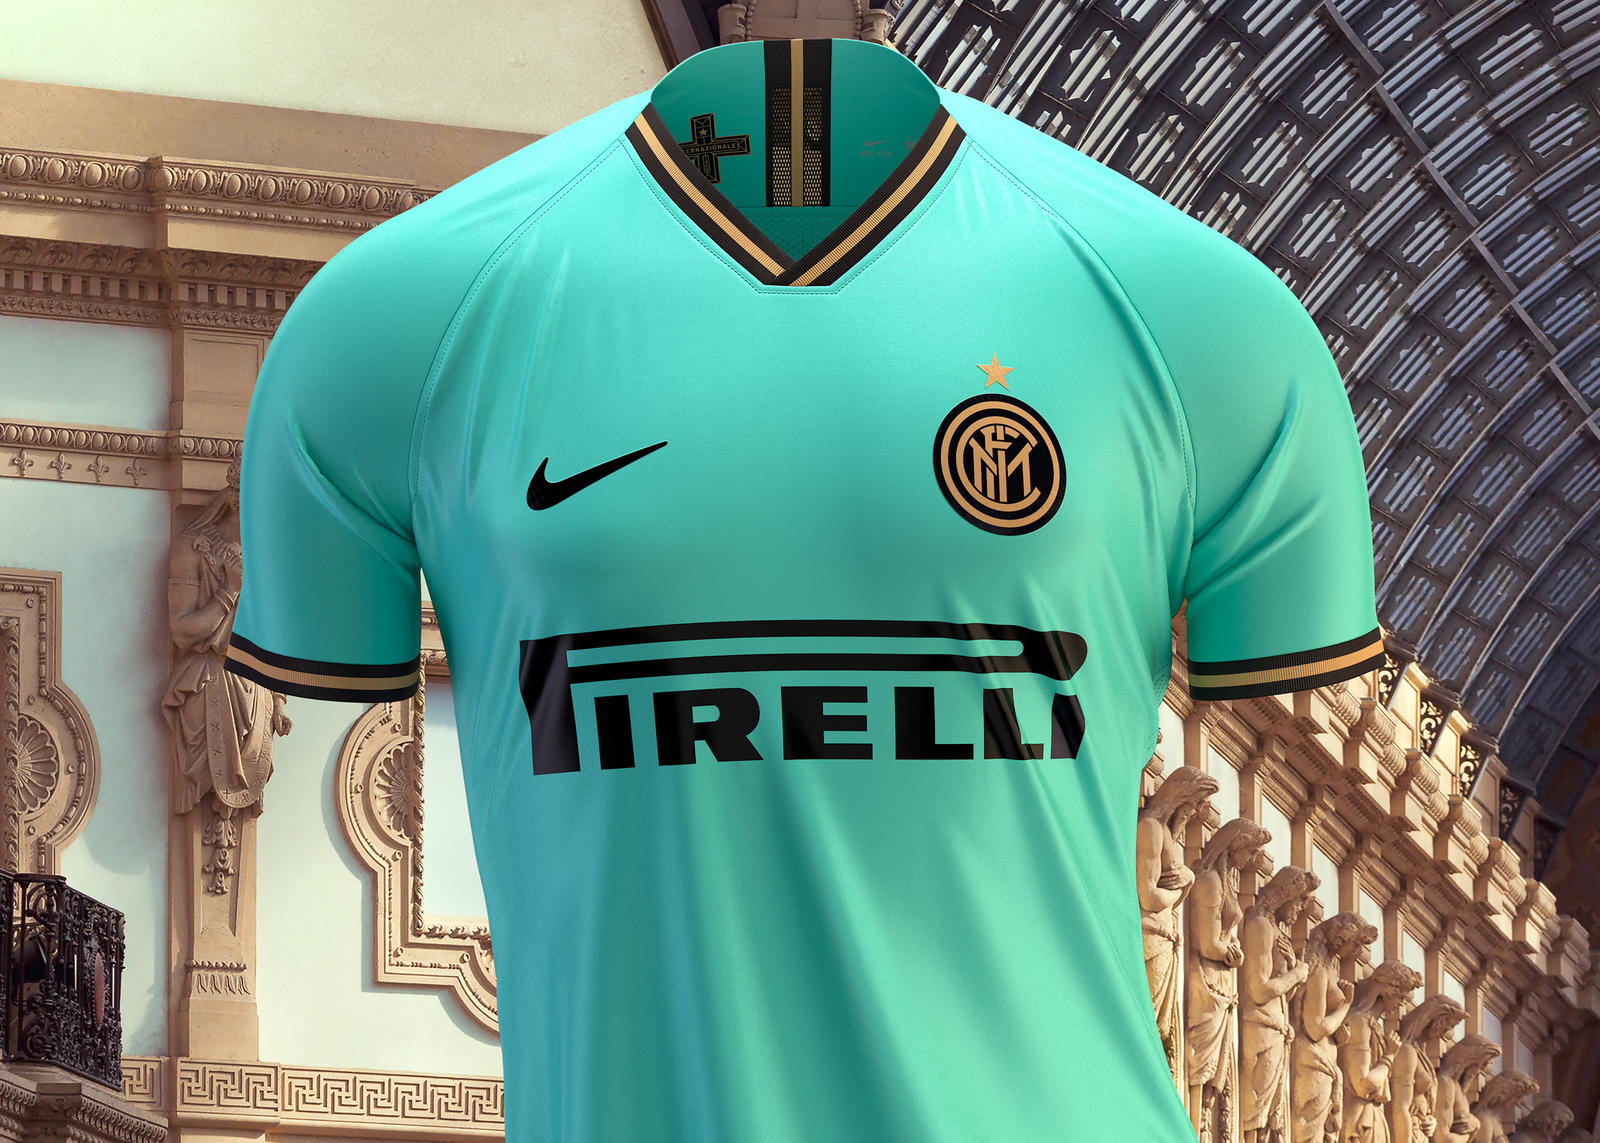 new style 71ca3 16d25 2019-20 FC Internazionale Milano Away Kit - Nike News